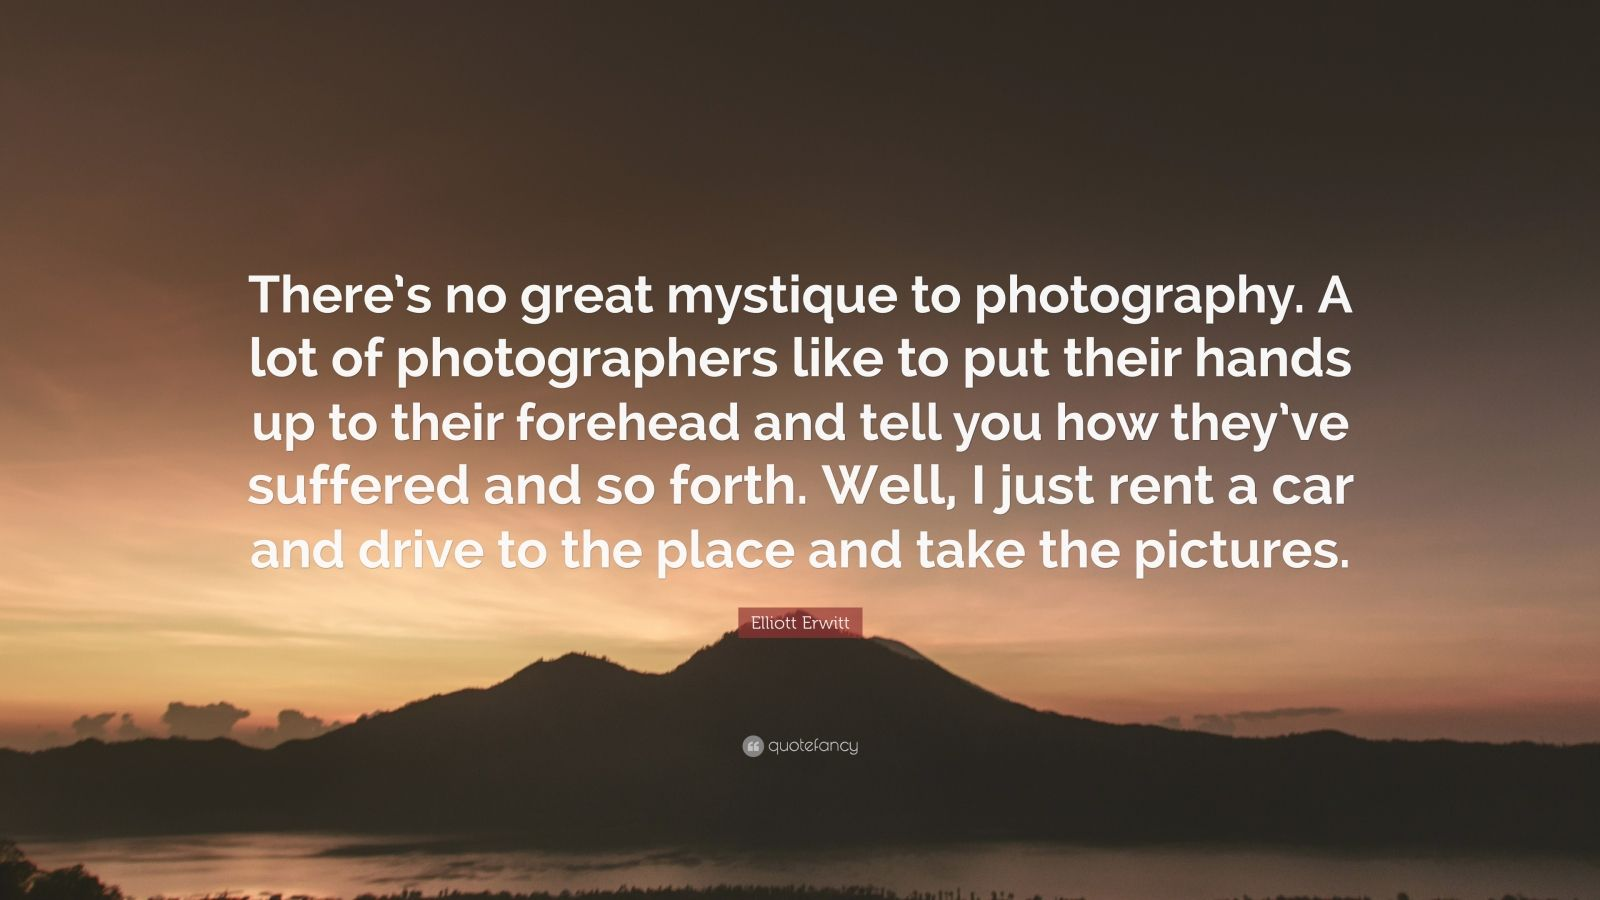 """Elliott Erwitt Quote: """"There's no great mystique to photography. A lot of photographers like to put their hands up to their forehead and tell you how they've suffered and so forth. Well, I just rent a car and drive to the place and take the pictures."""""""